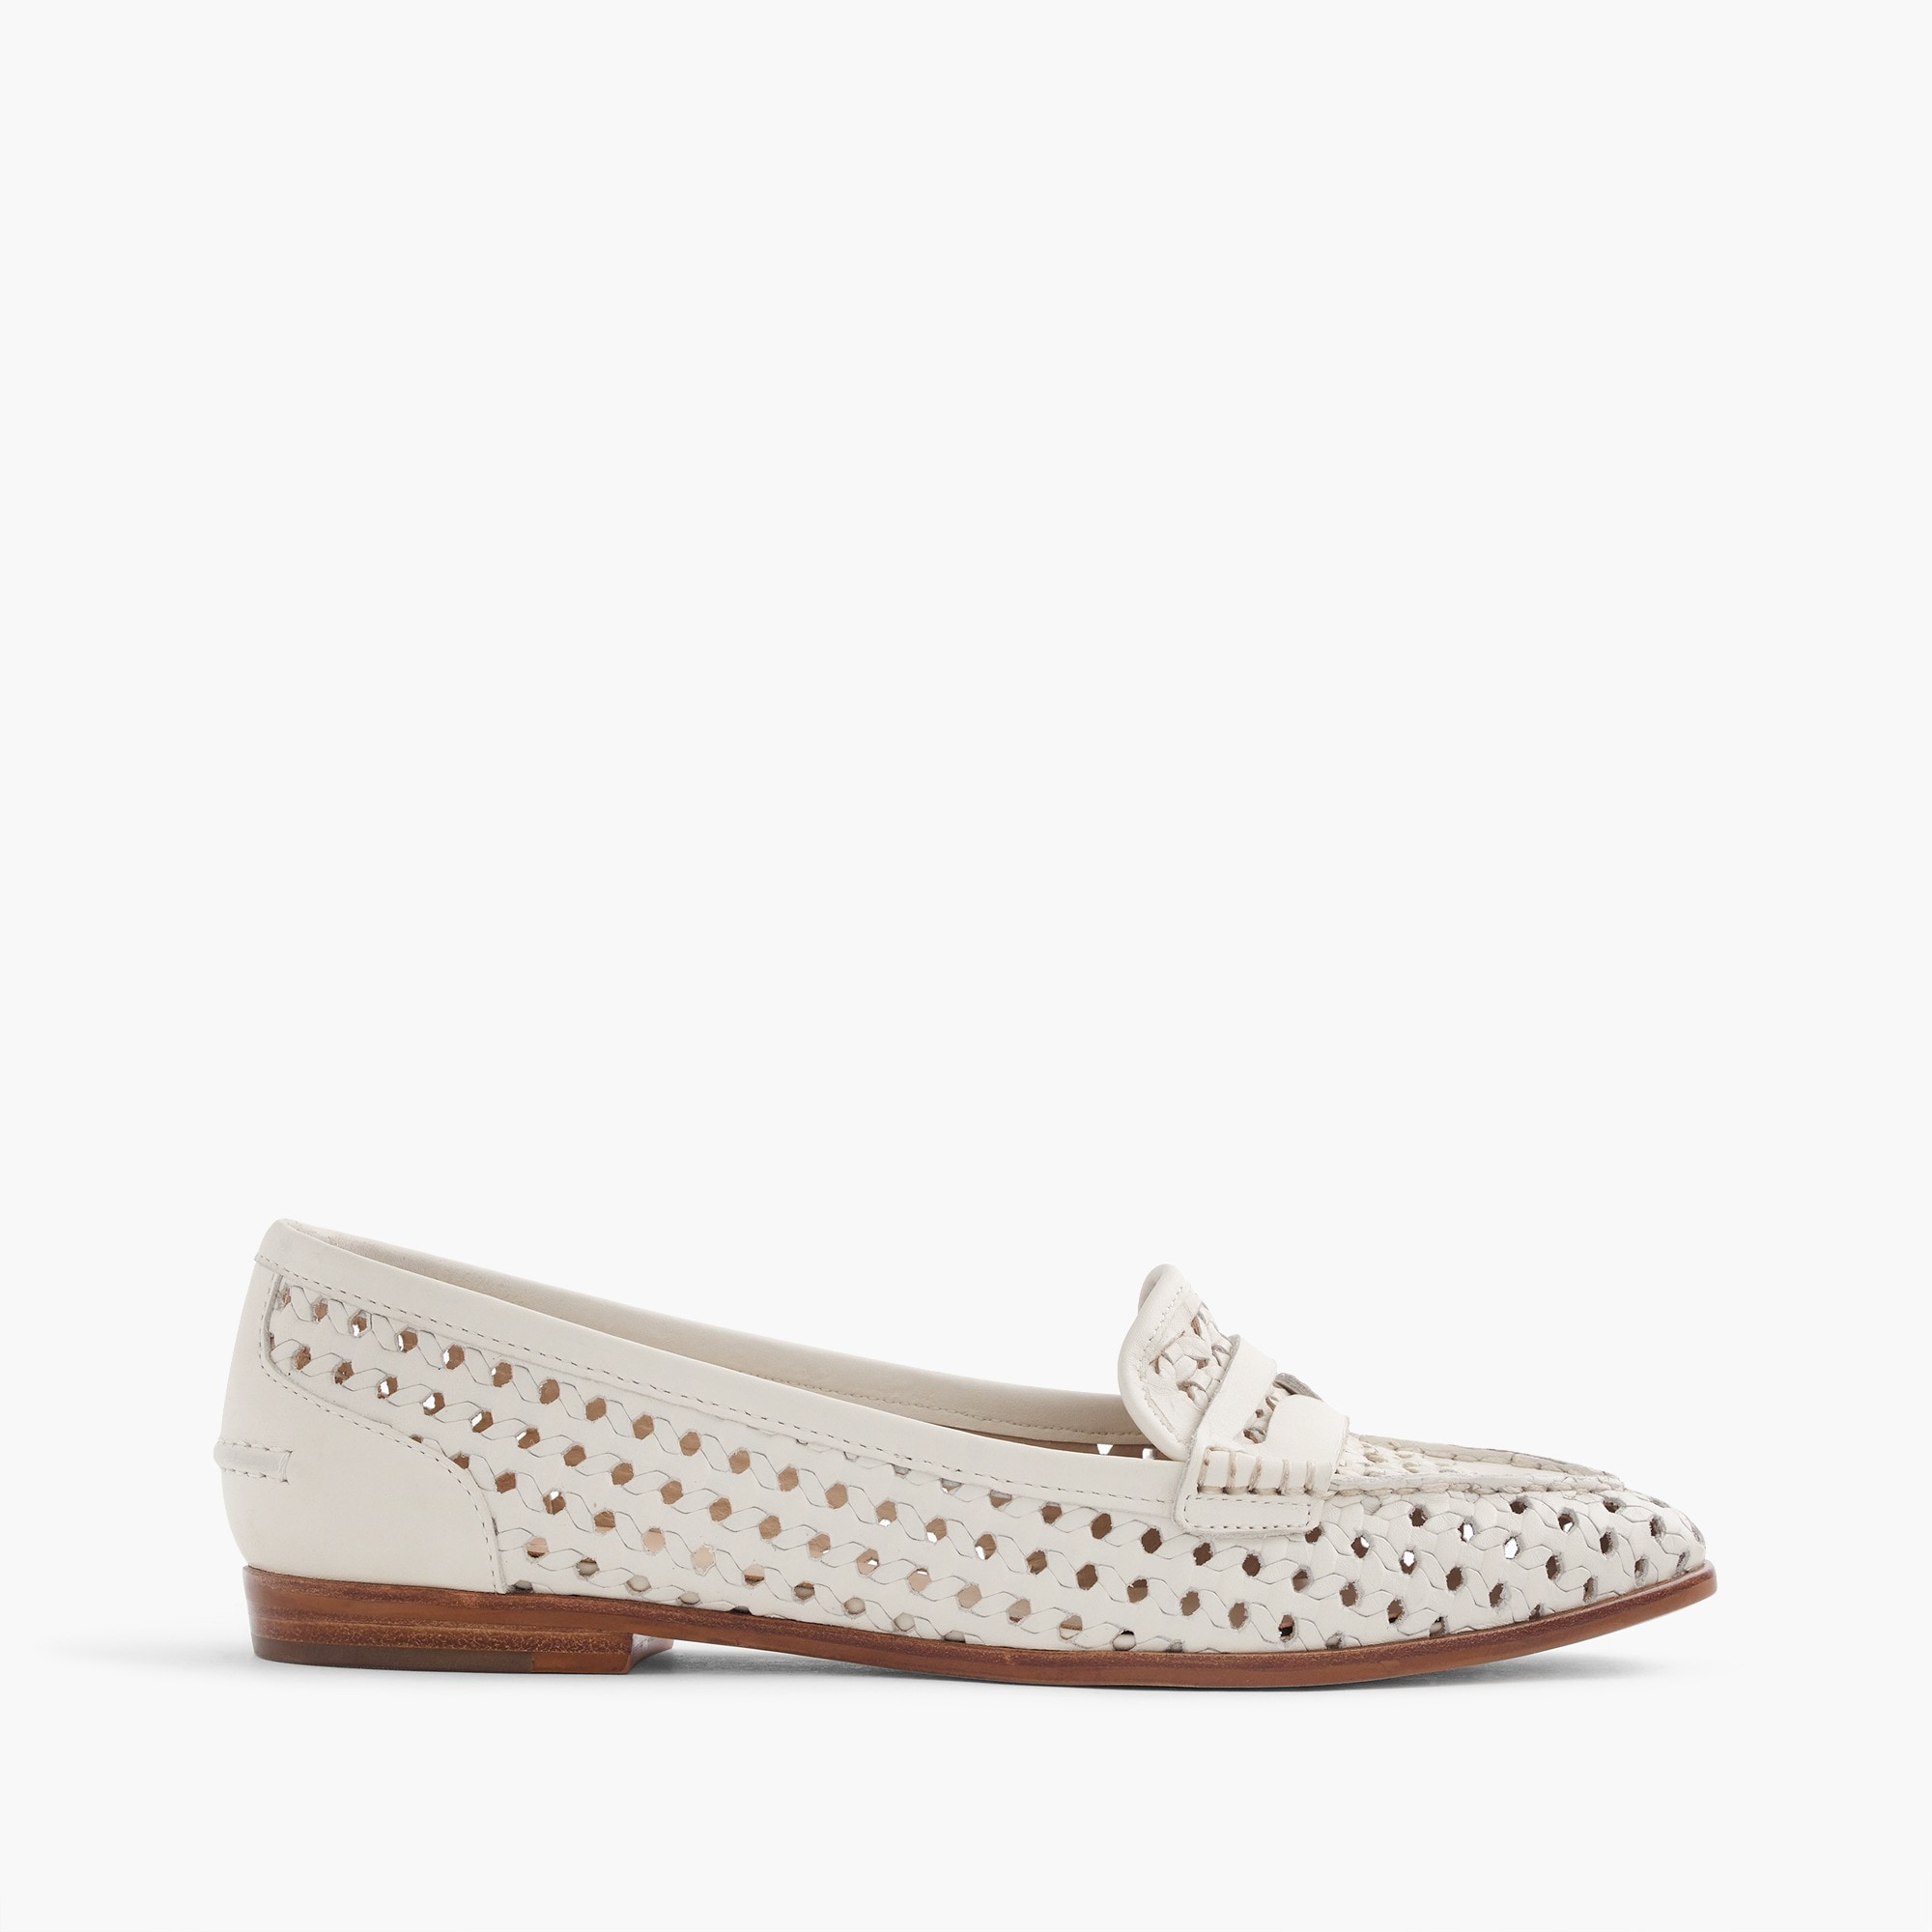 collins woven-leather loafers : women shoes